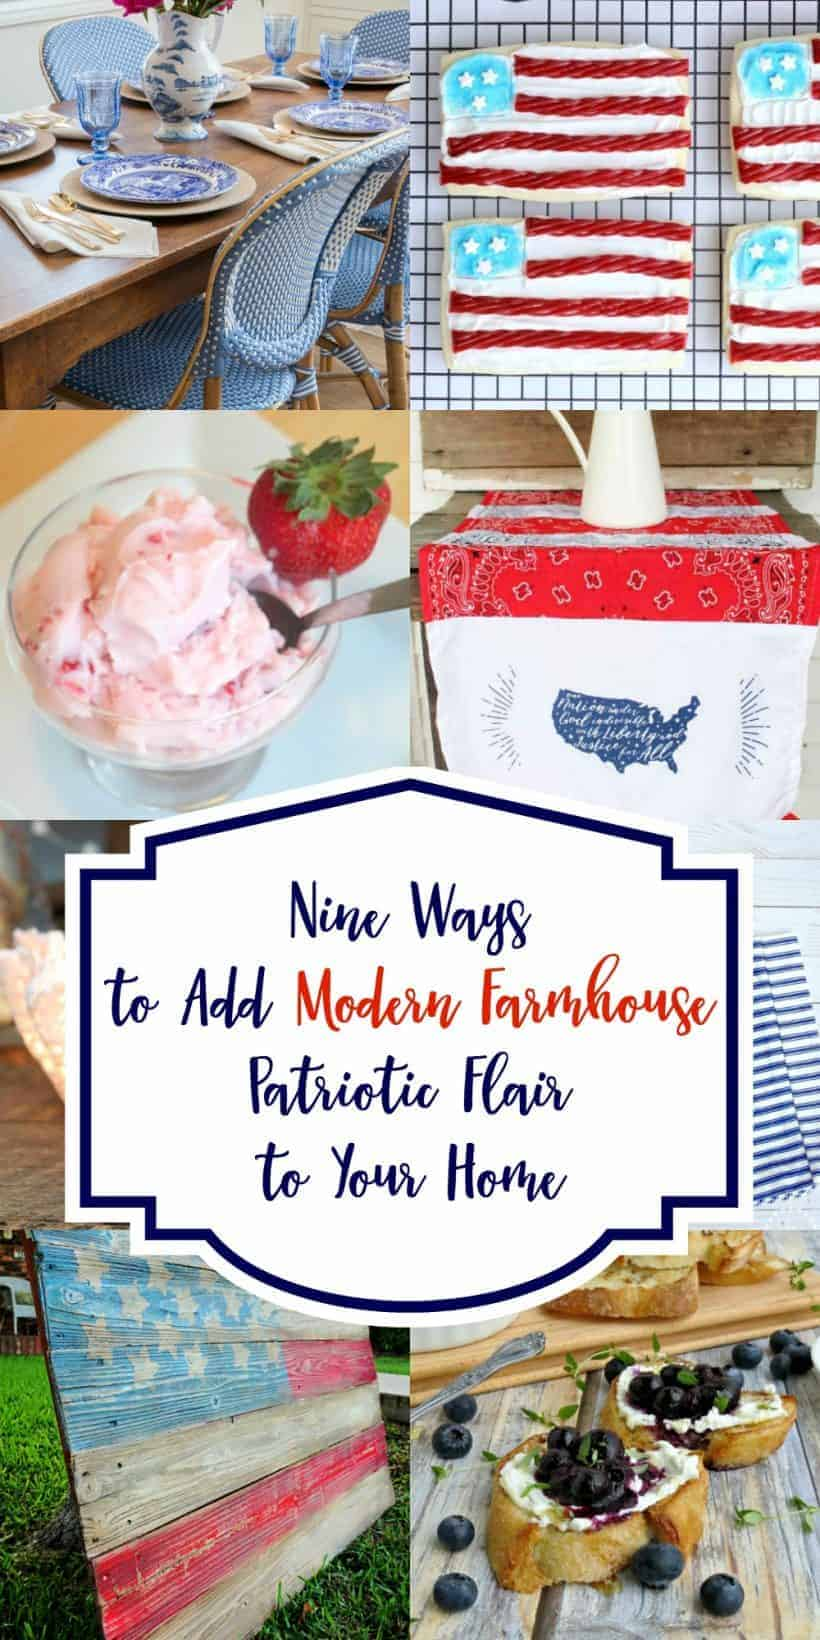 Long collage of modern farmhouse patriotic flair and inspiration for your home!